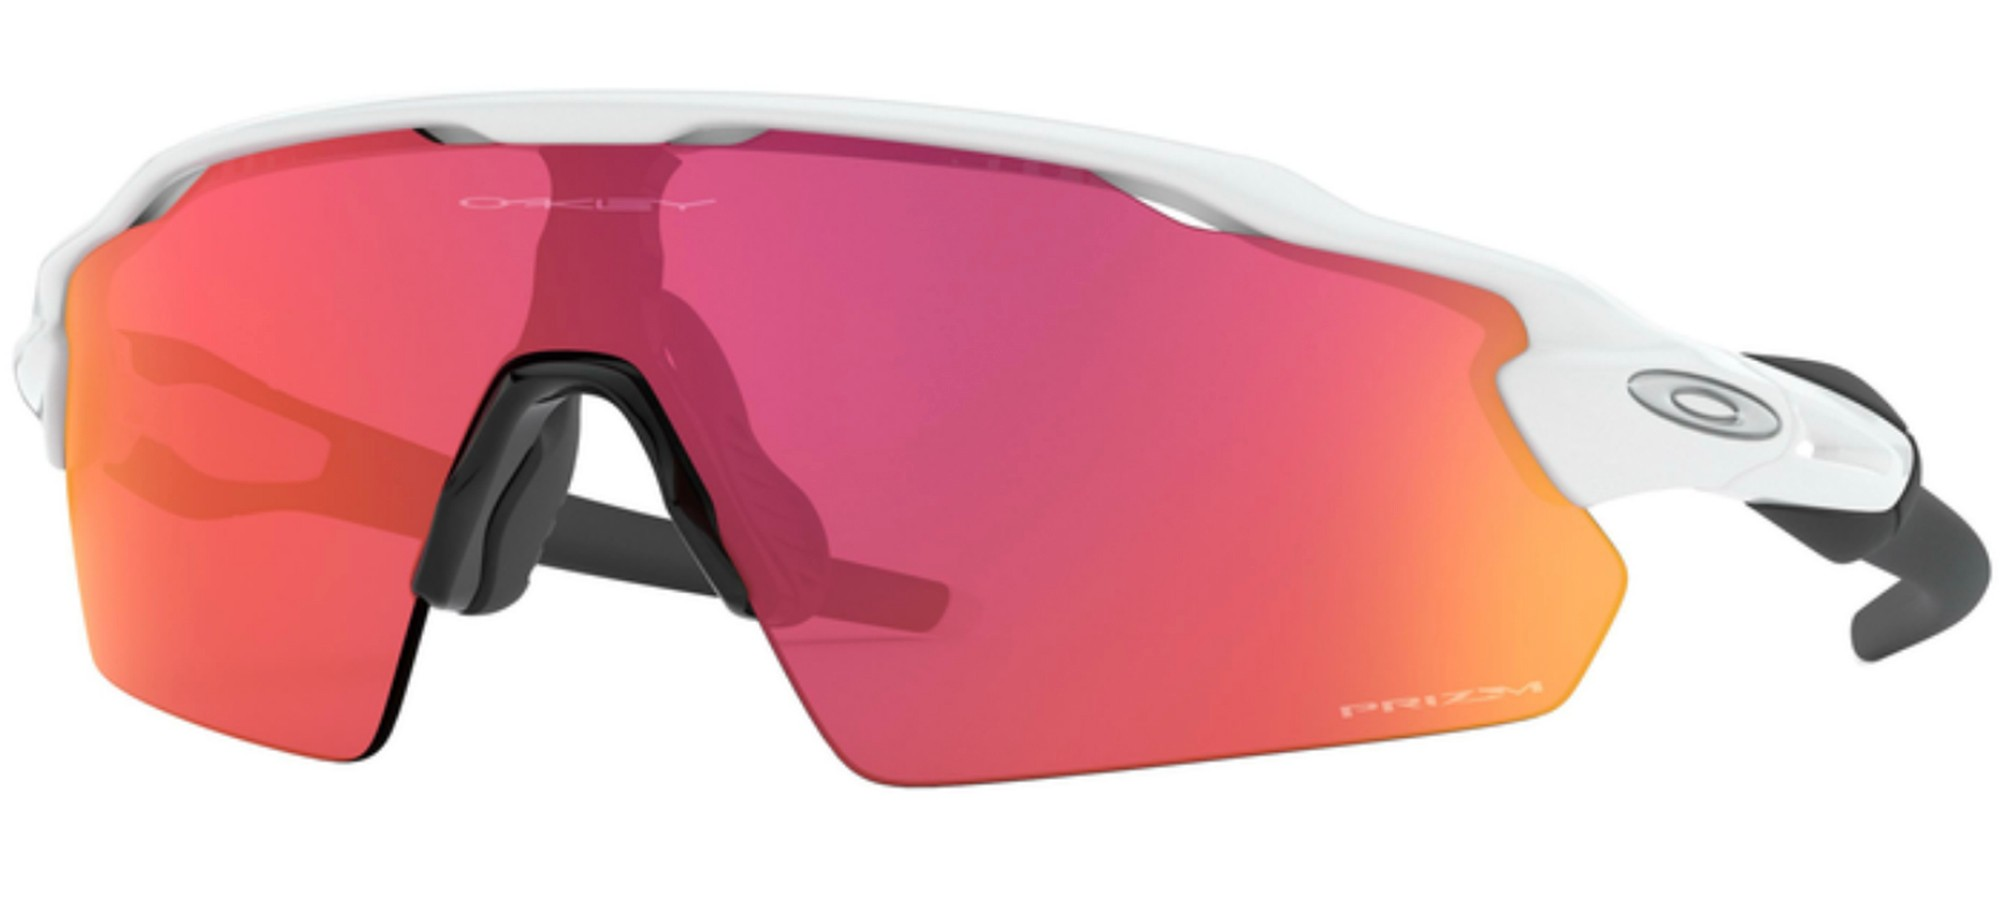 Oakley sunglasses RADAR EV PITCH OO 9211